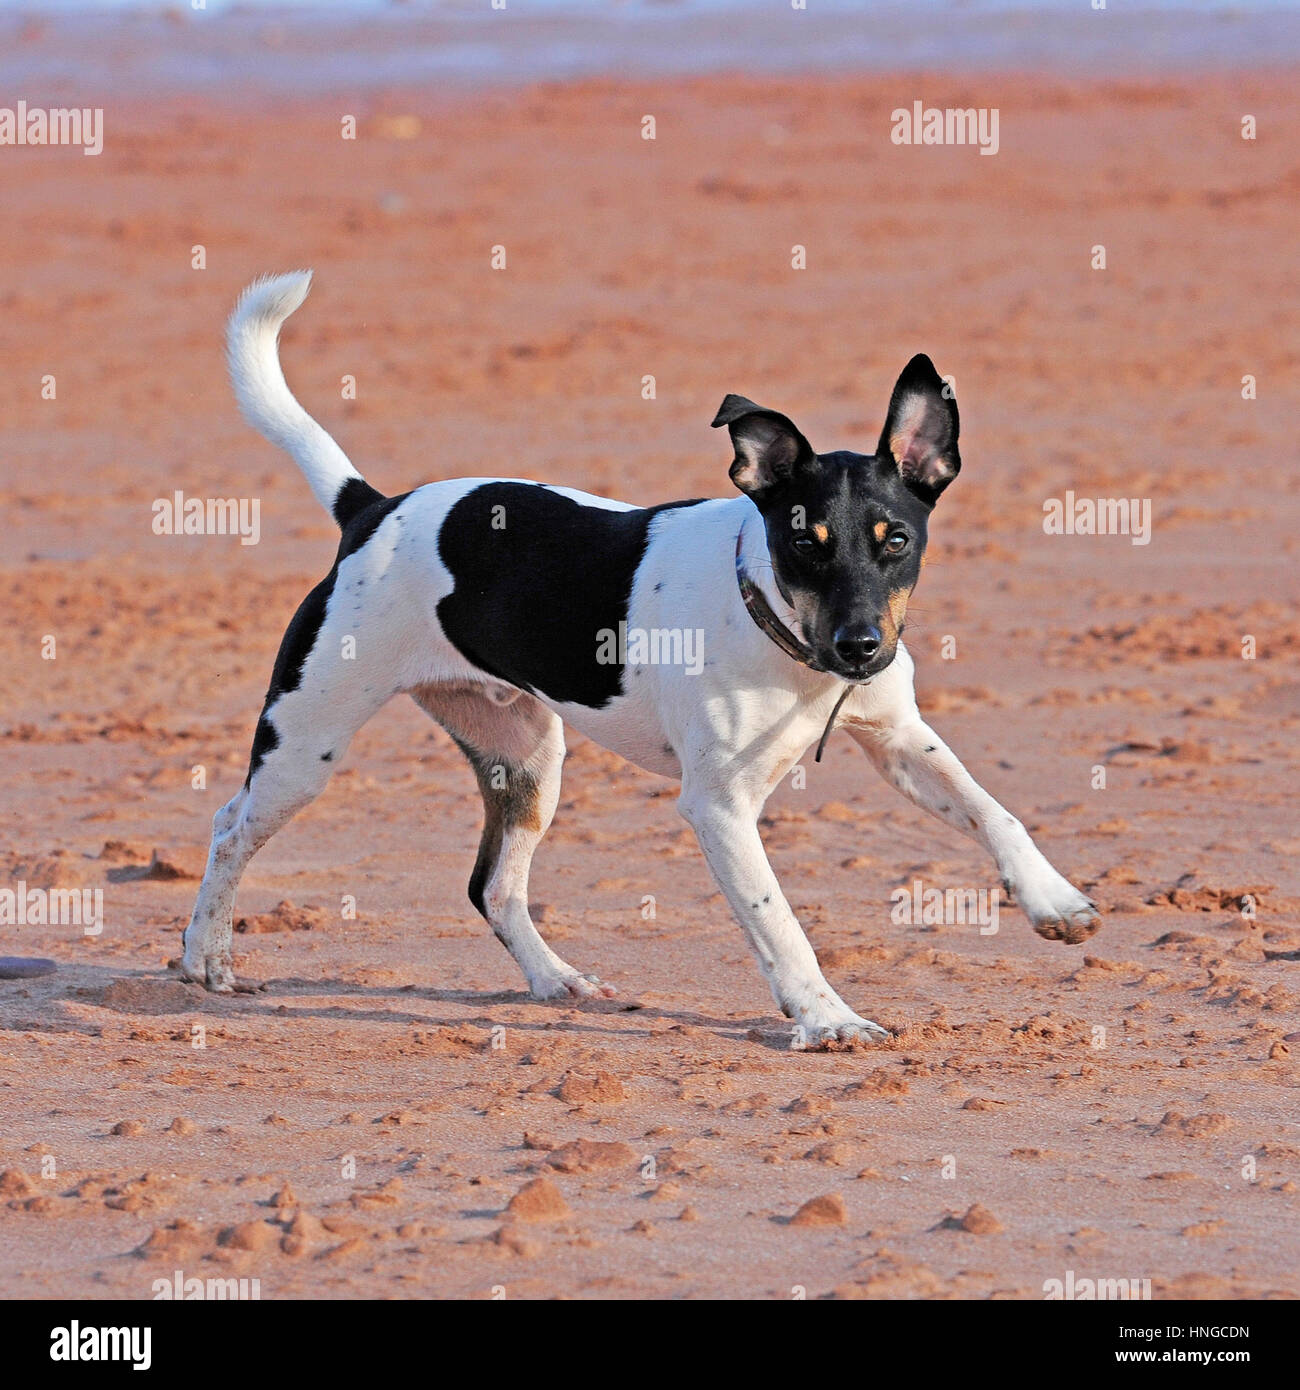 jack russell terrier dog - Stock Image